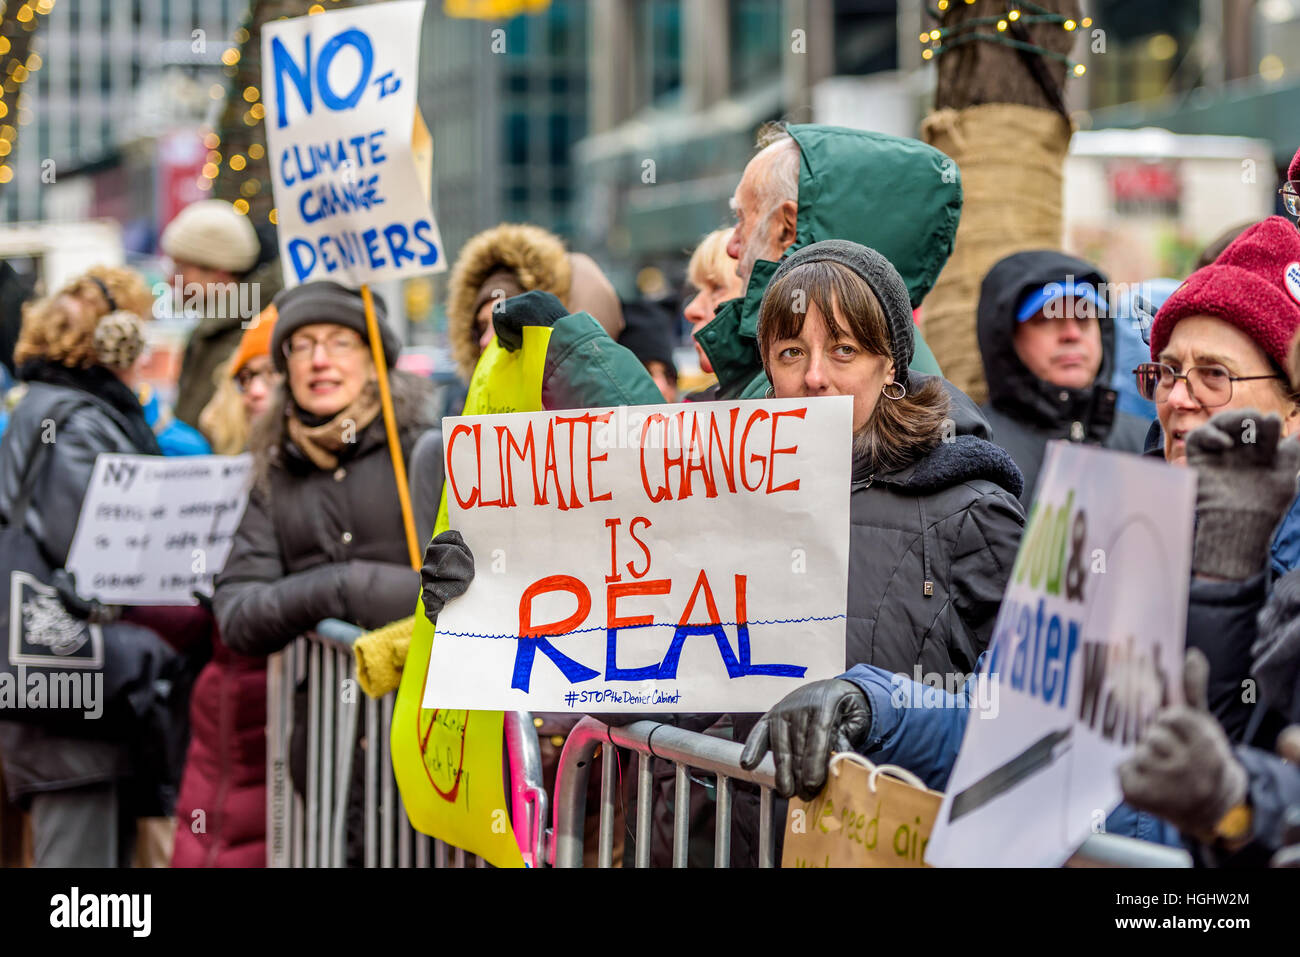 New York, USA. 9th January, 2017. On Monday, January 9th, New York activist groups are joining a national day of Stock Photo